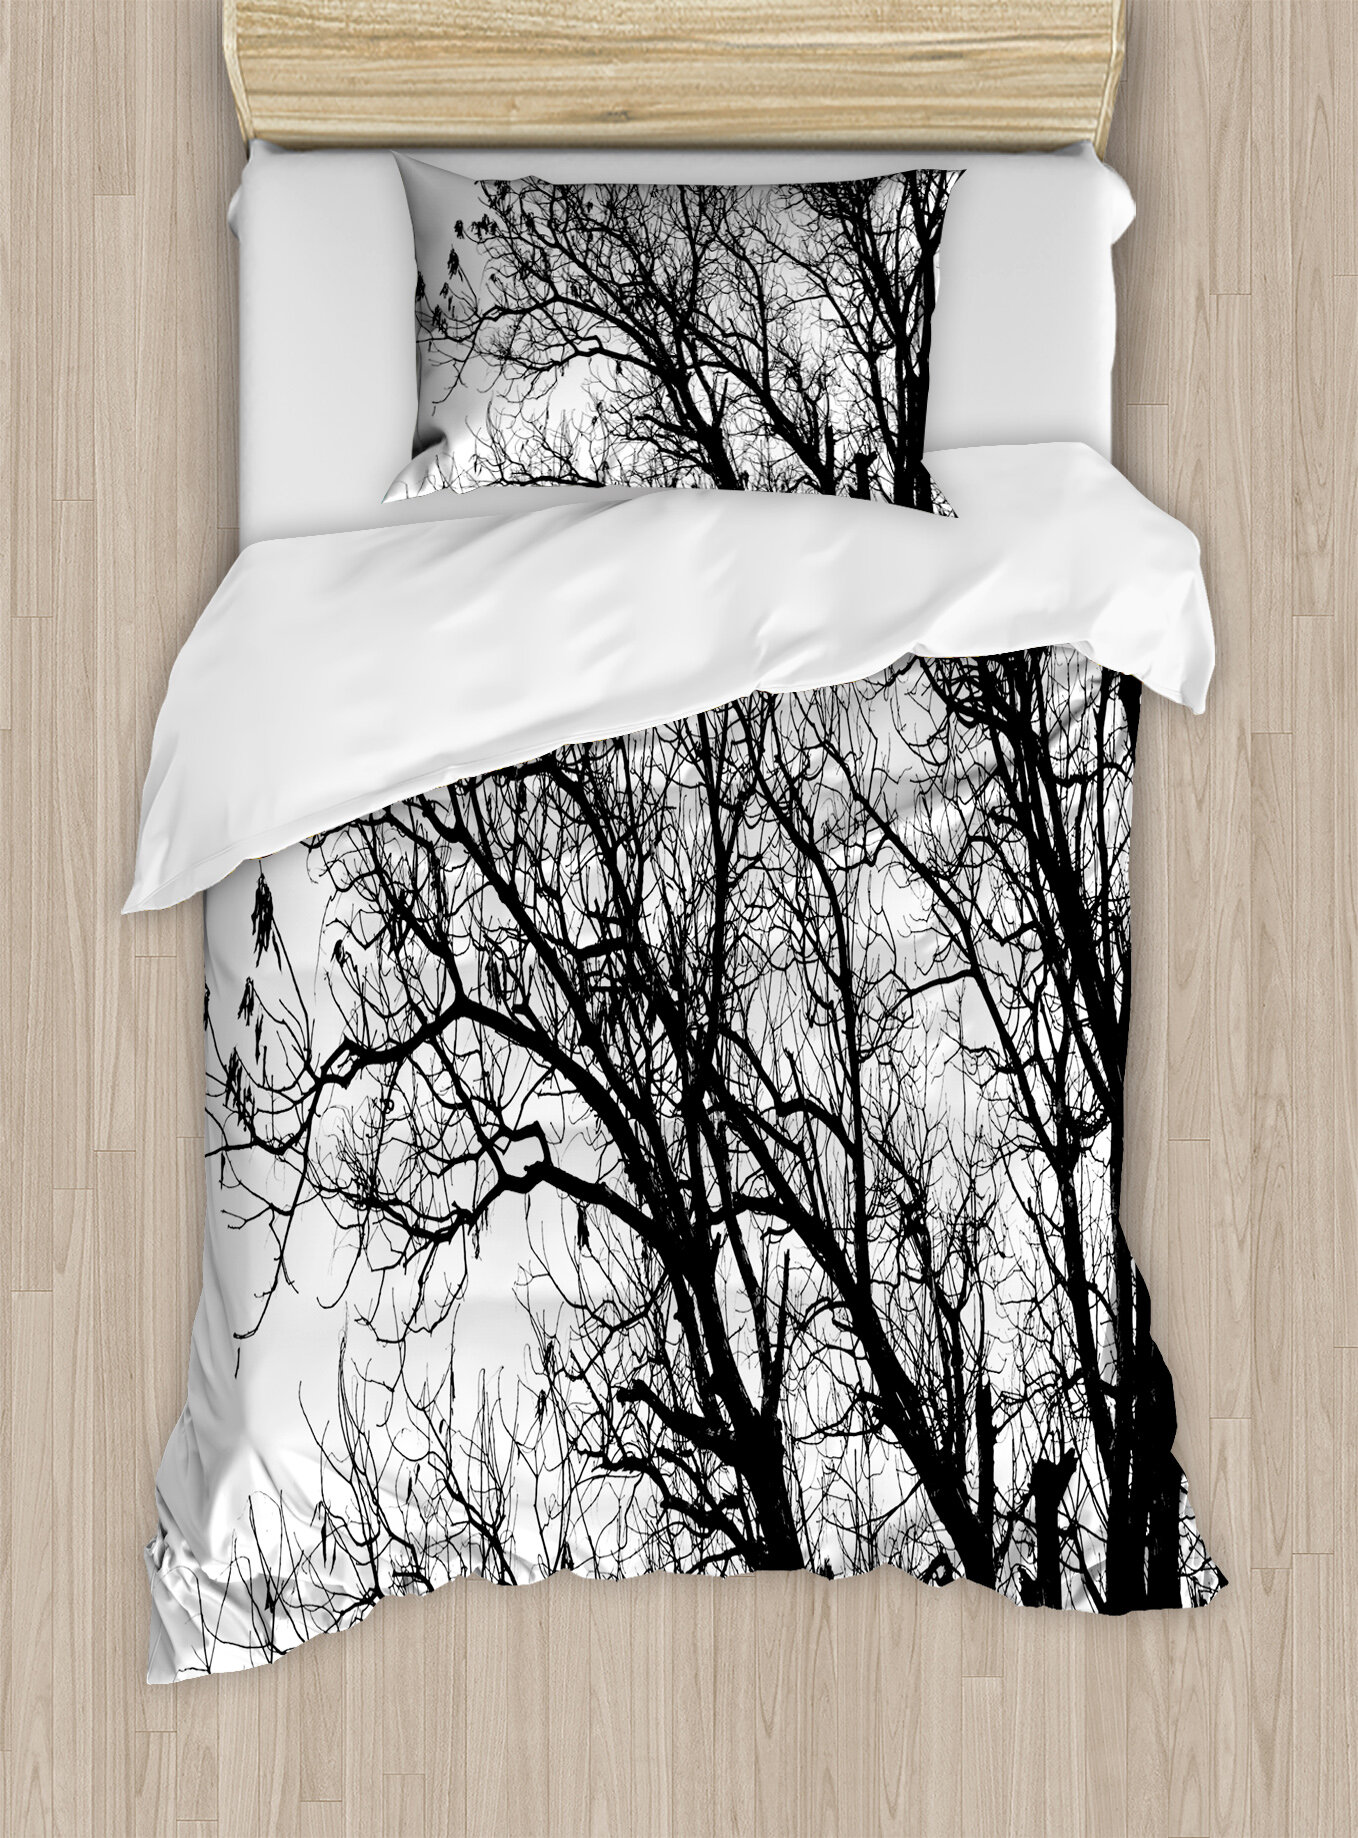 East Urban Home Nature Leafless Autumn Fall Tree Branches Tops Oak Forest Woodland Season Eco Theme Duvet Set Wayfair